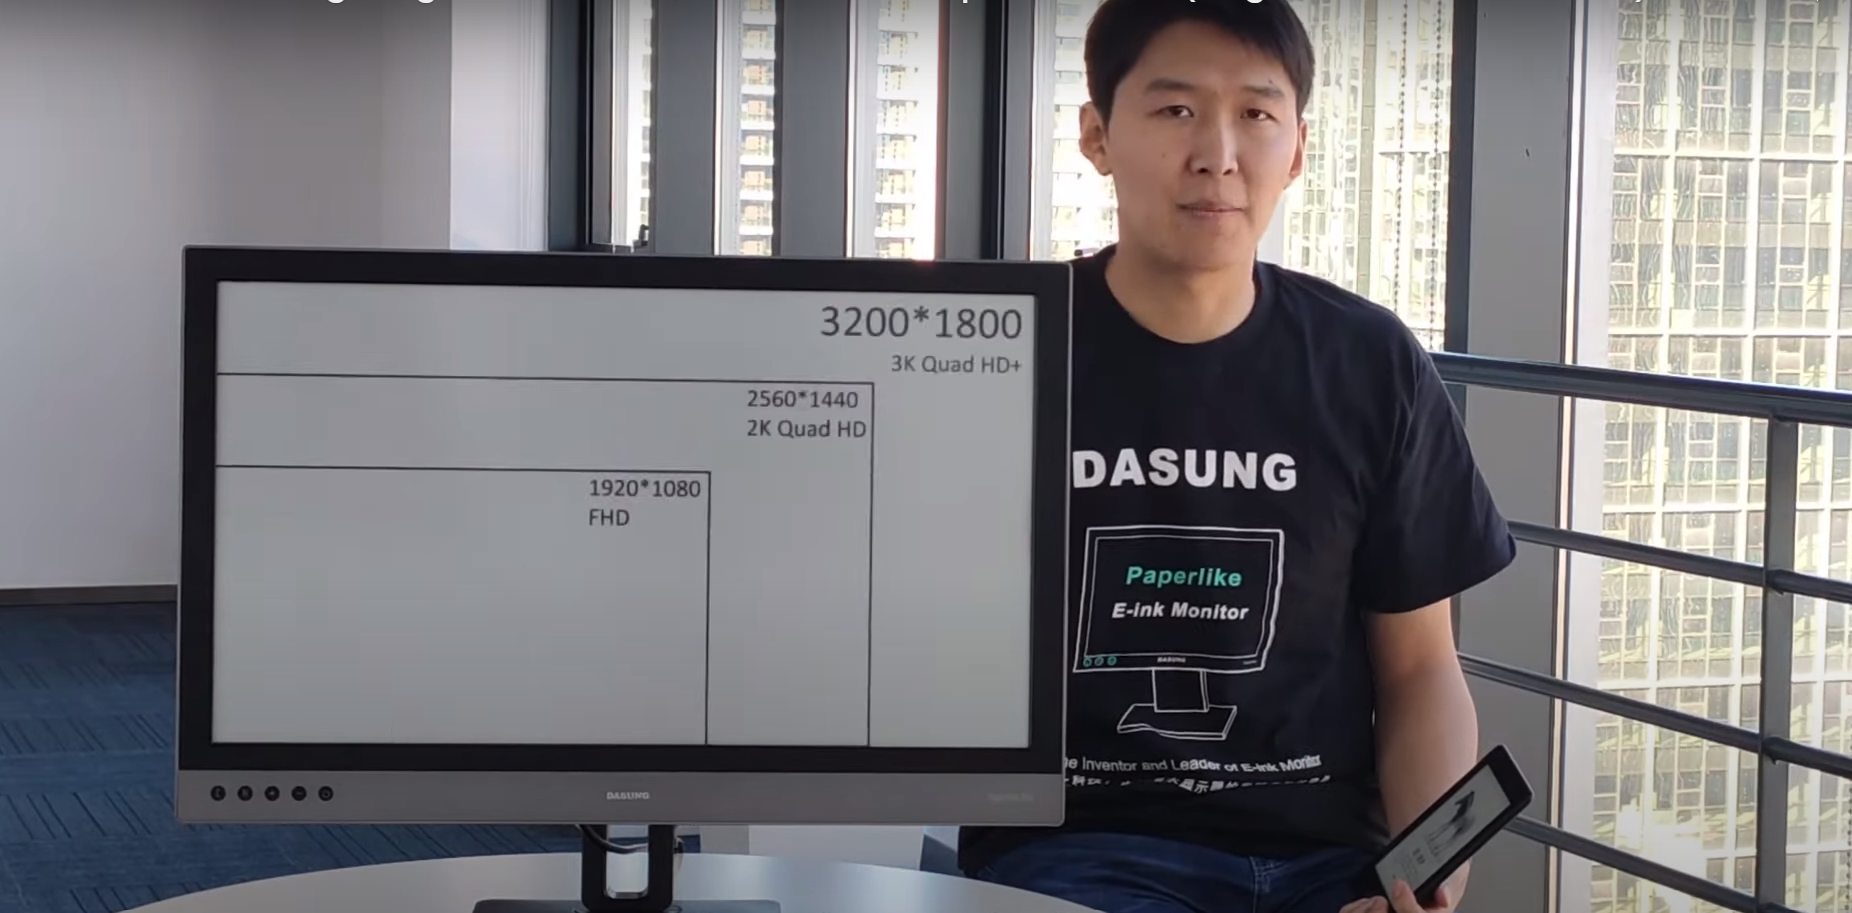 The Paperlike 253 is pitched as an alternative to traditional LCD computer monitors, which can cause eye strain and fatigue over long periods of use